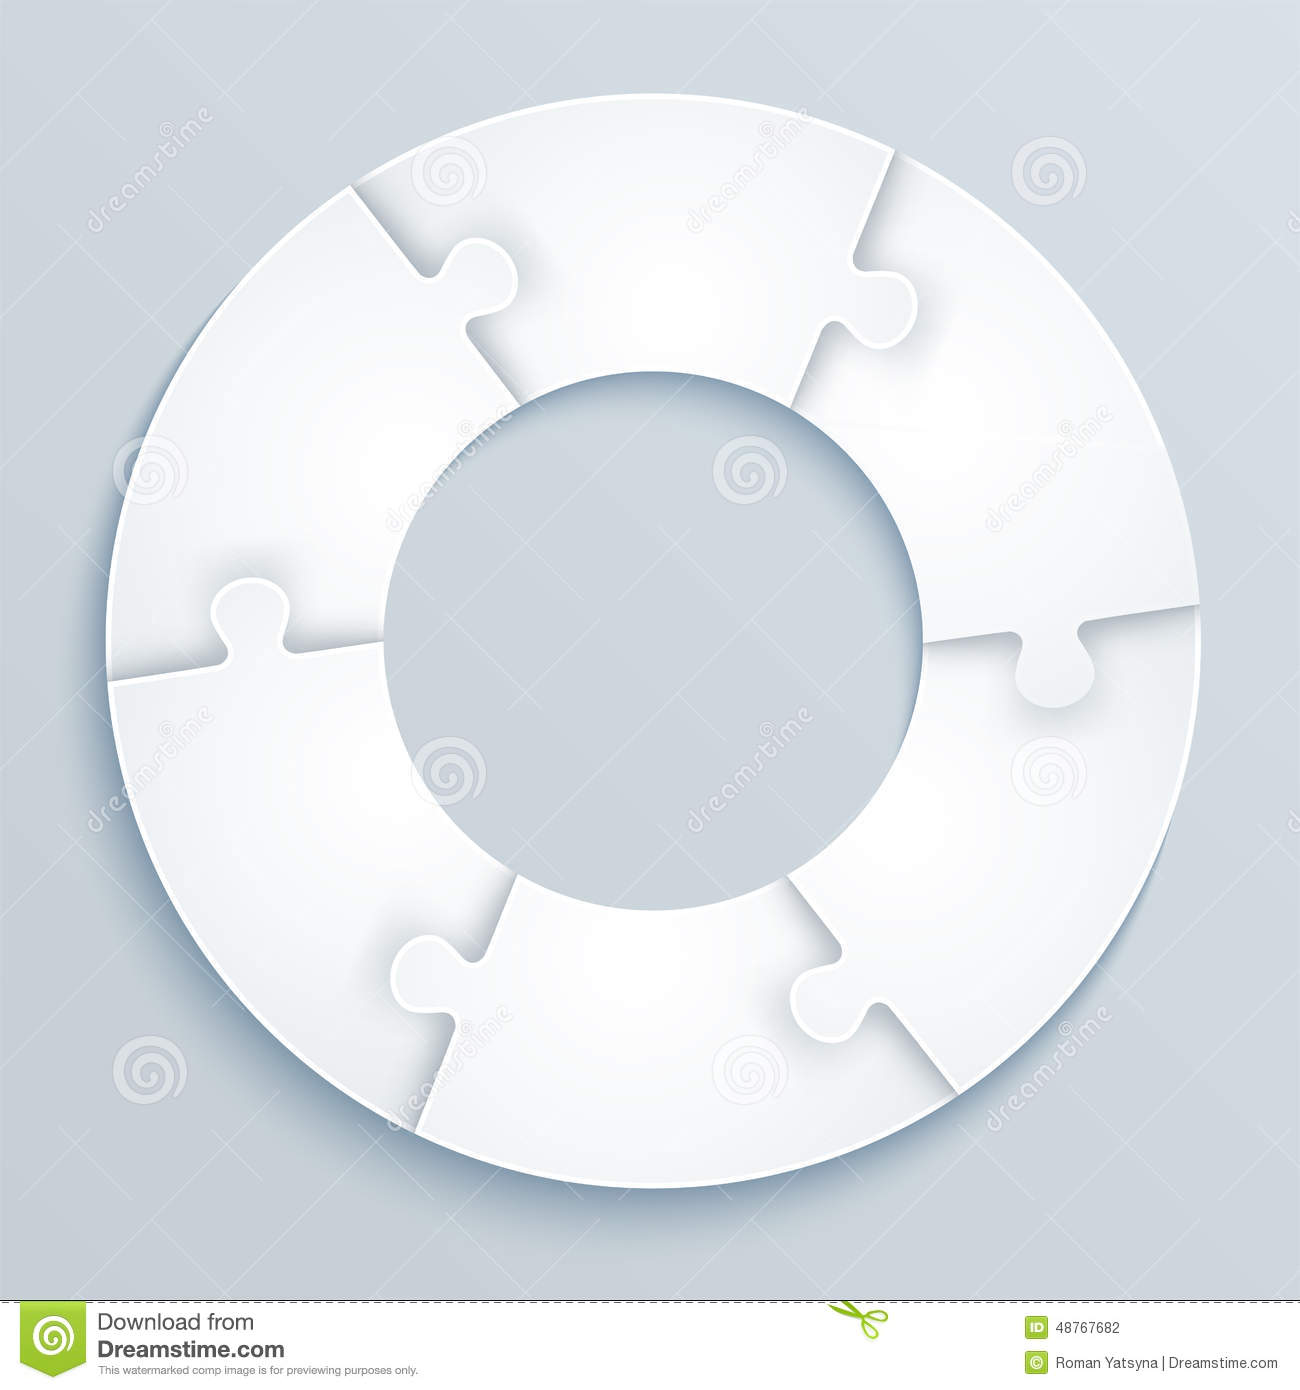 Parts Of Paper Puzzles In The Form A Circle 6 Pieces